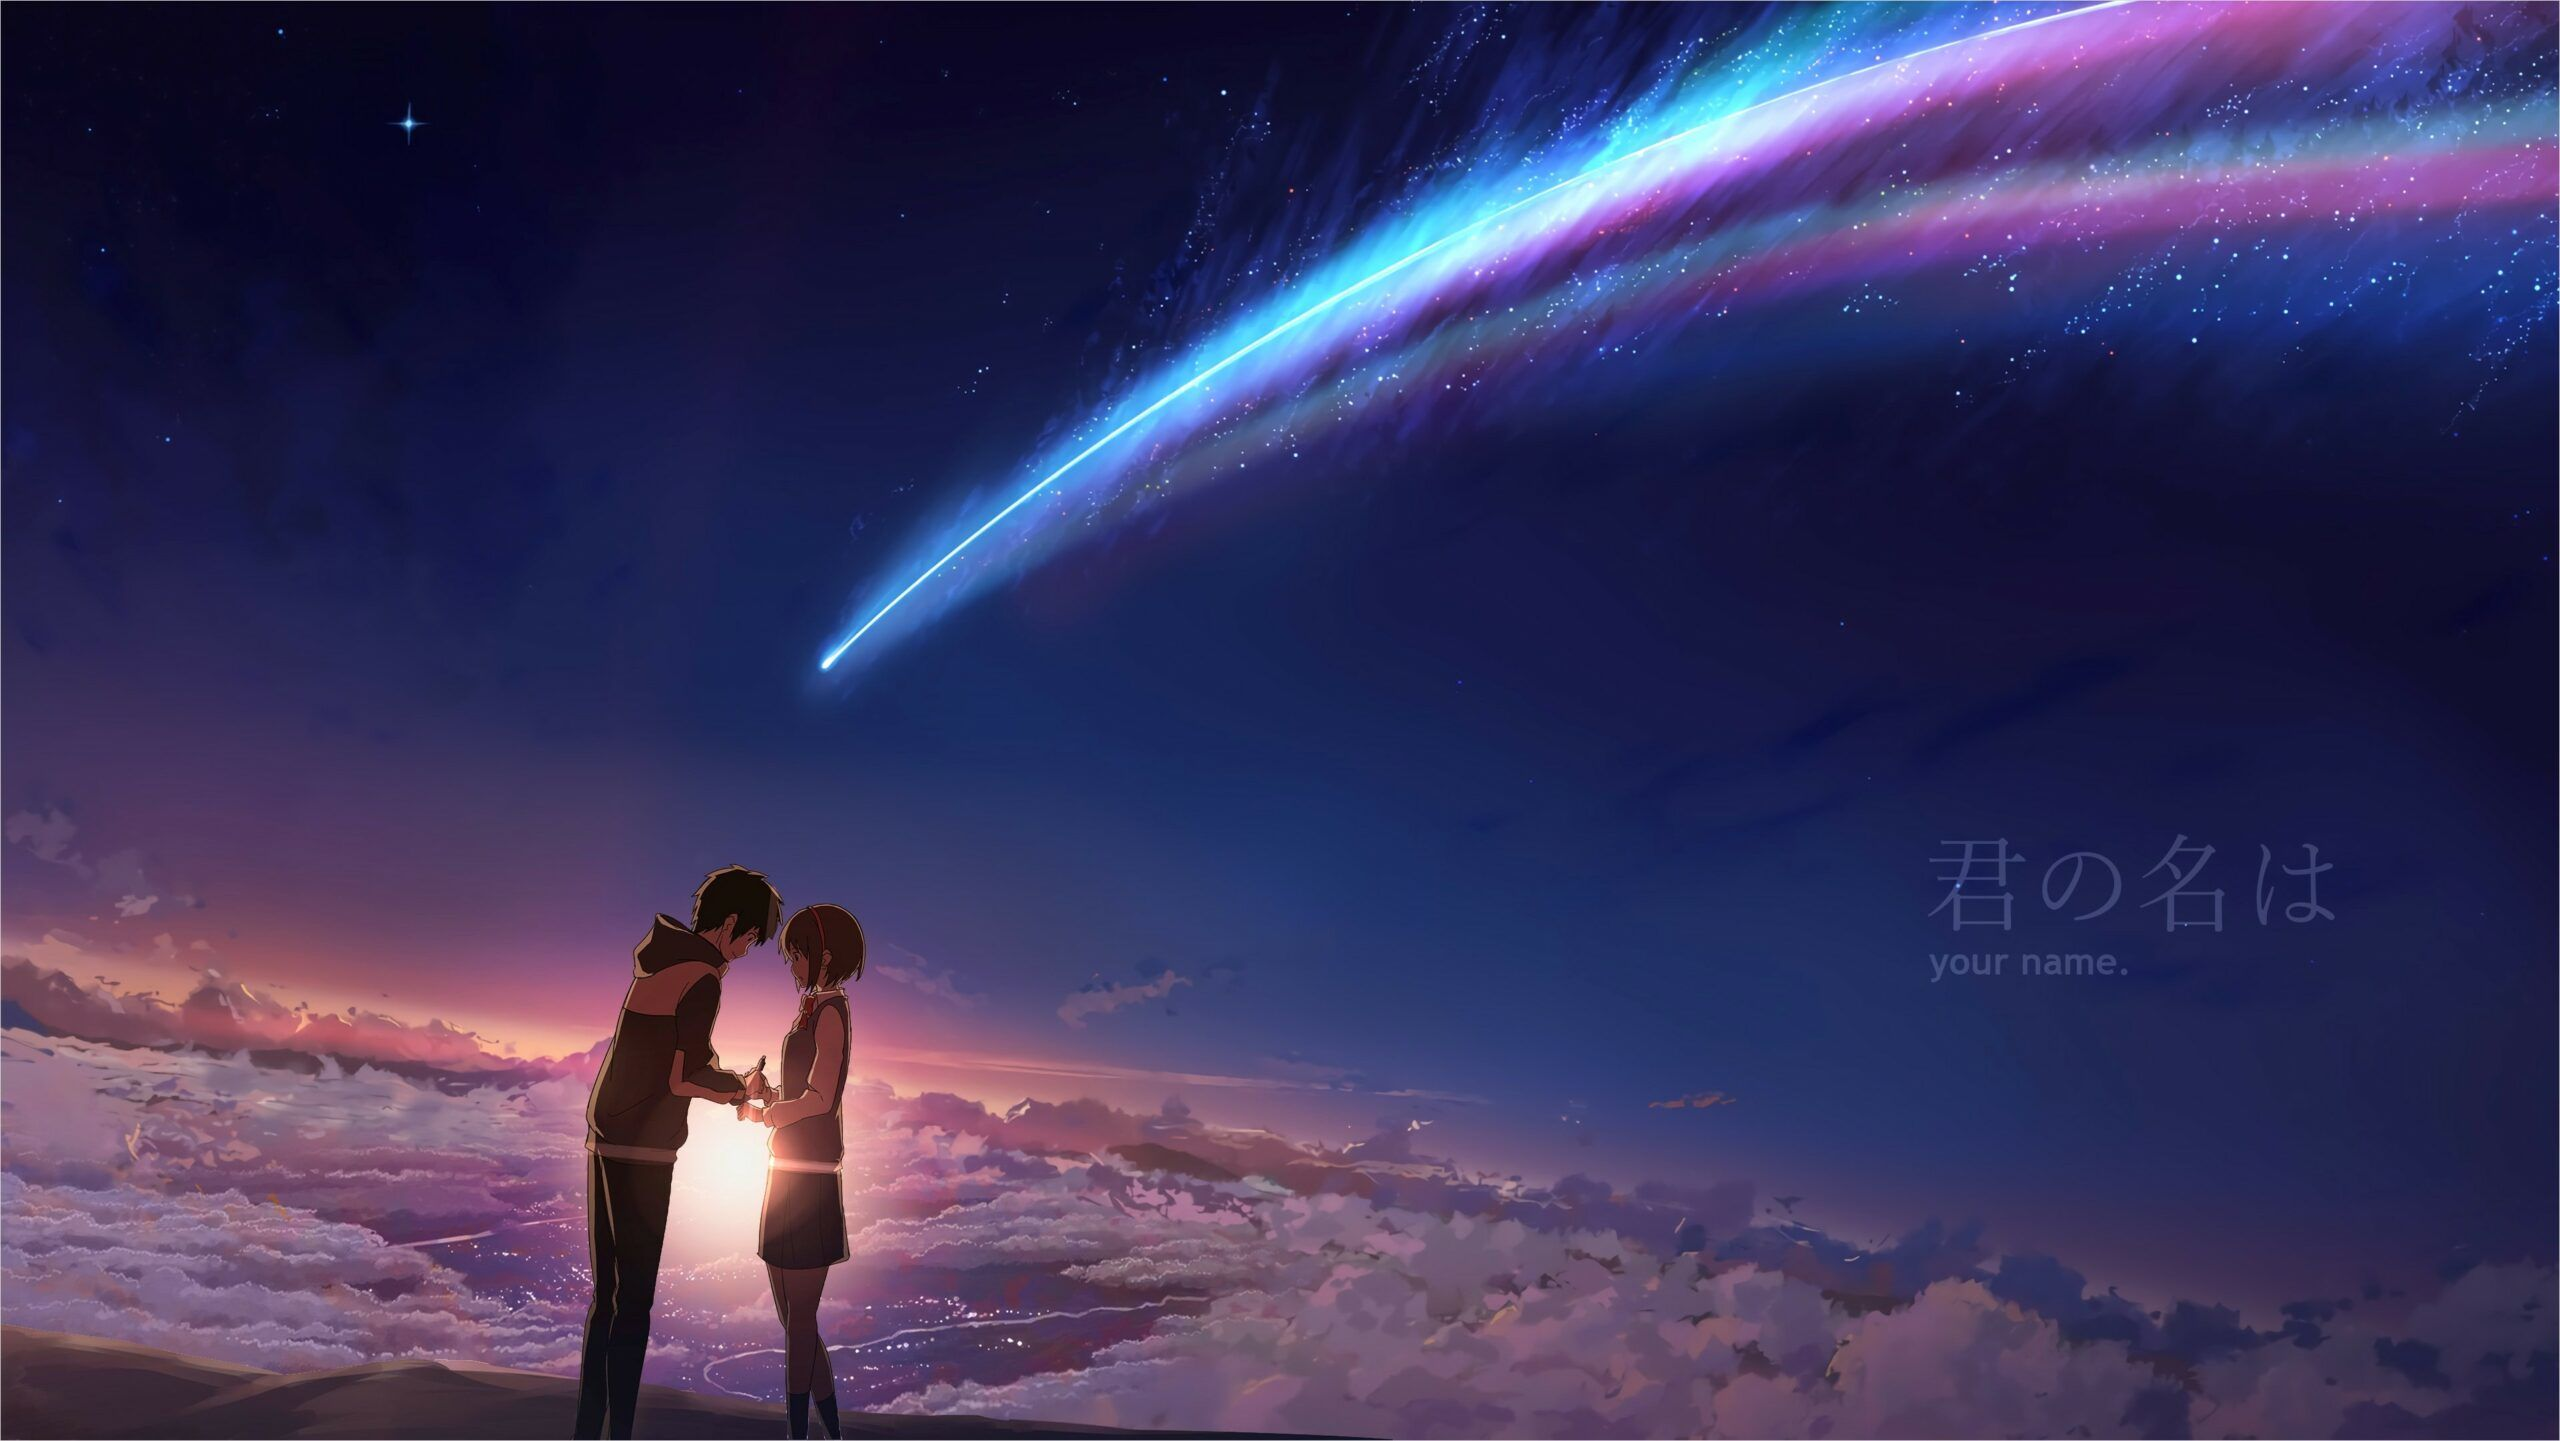 4k Wallpaper Anime For Pc In 2020 Anime Wallpaper Download 4k Wallpapers For Pc Kimi No Na Wa Wallpaper